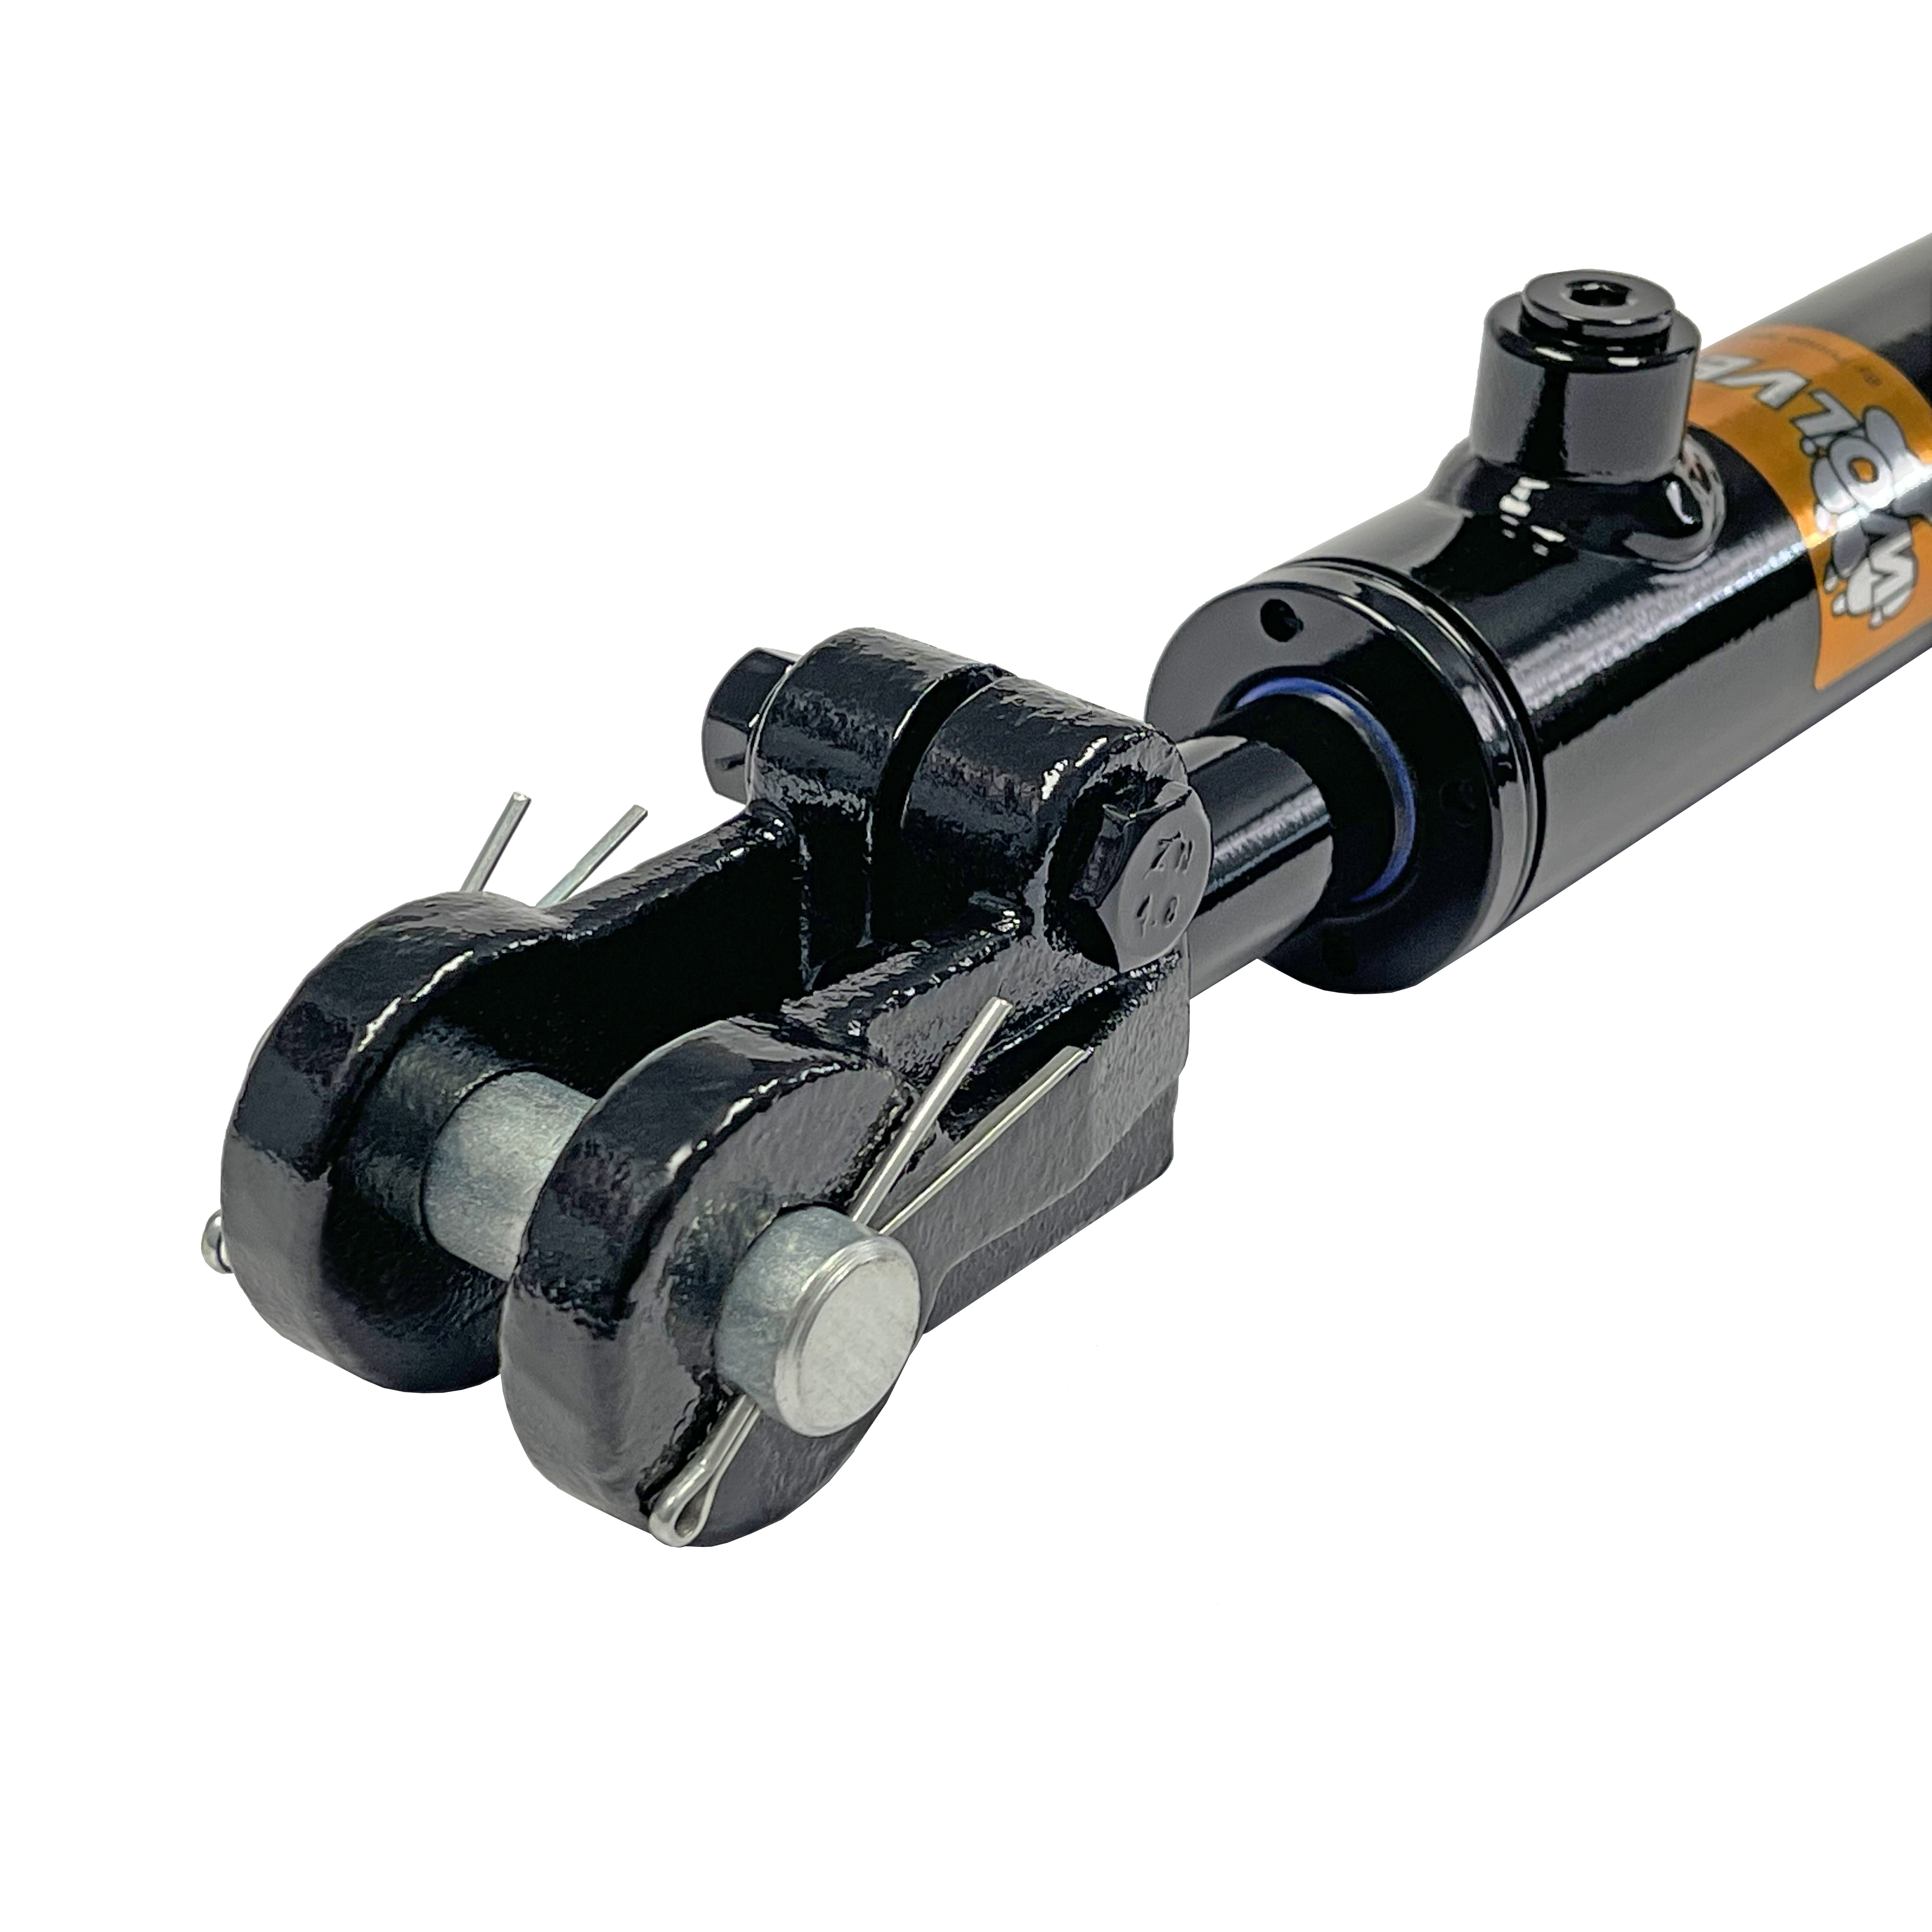 1.5 bore x 10 stroke Clevis hydraulic cylinder, welded Clevis double acting cylinder   Prince Hydraulics